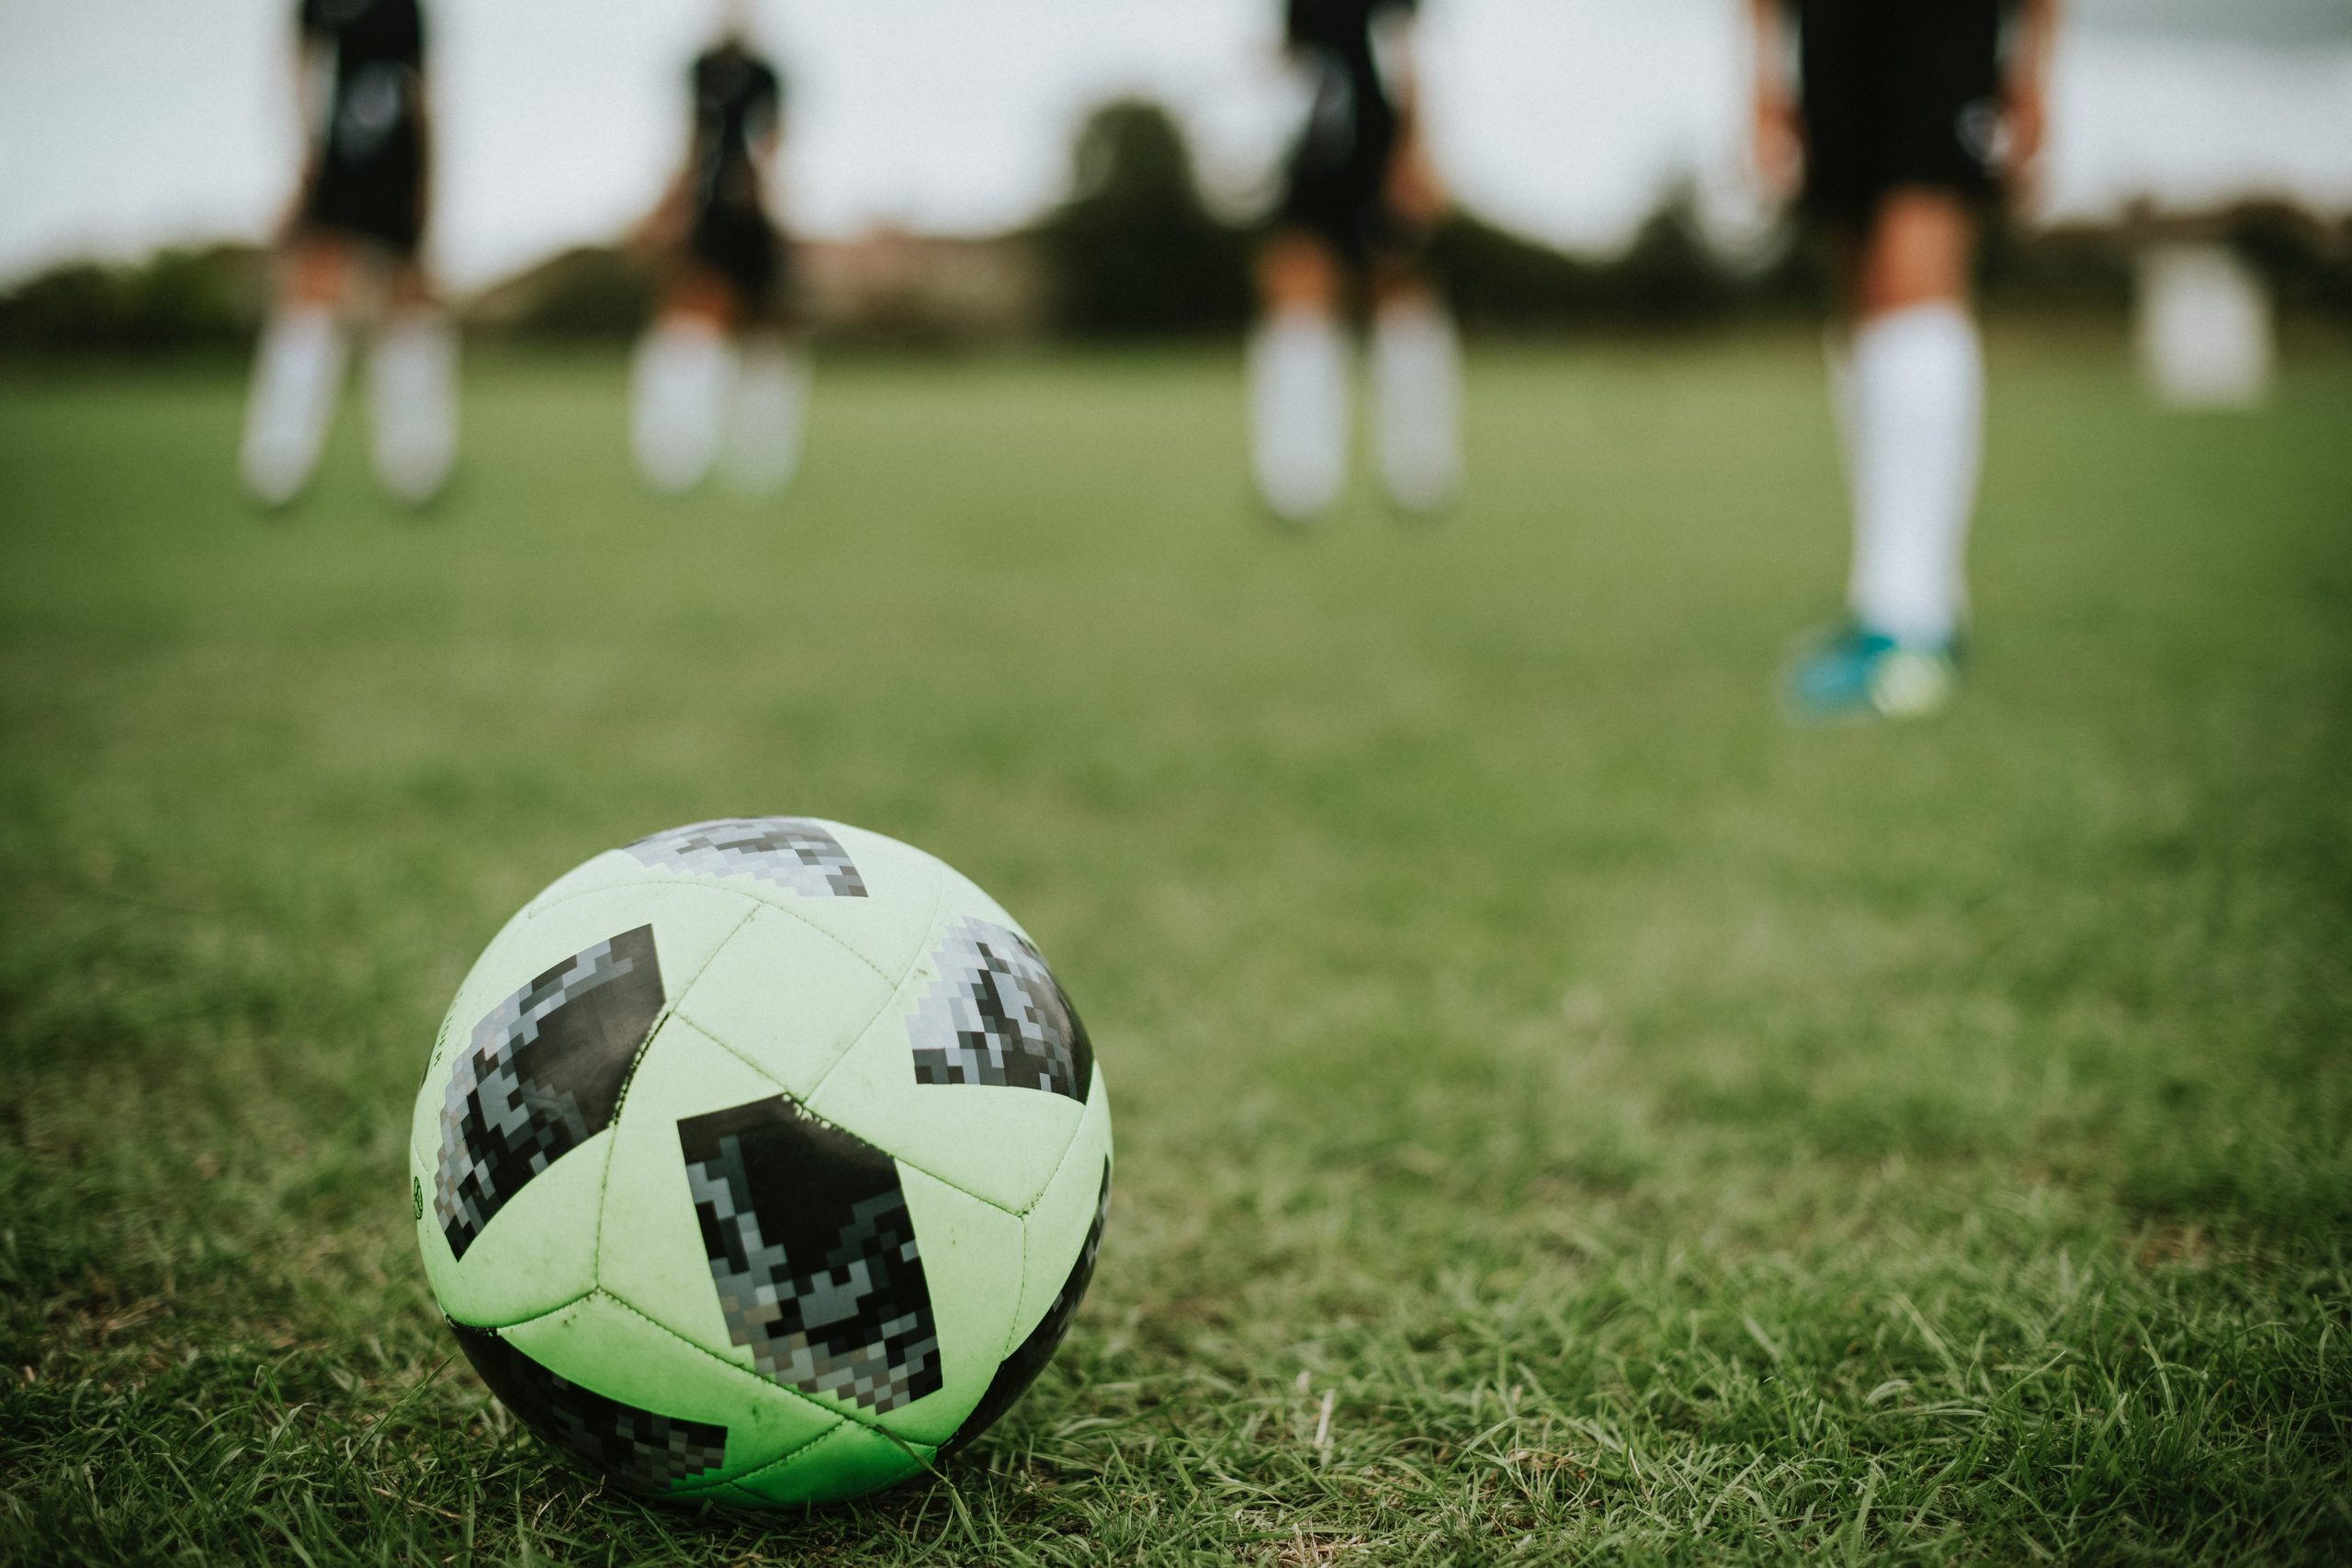 Funding to Tackle Mental Health Through Sport